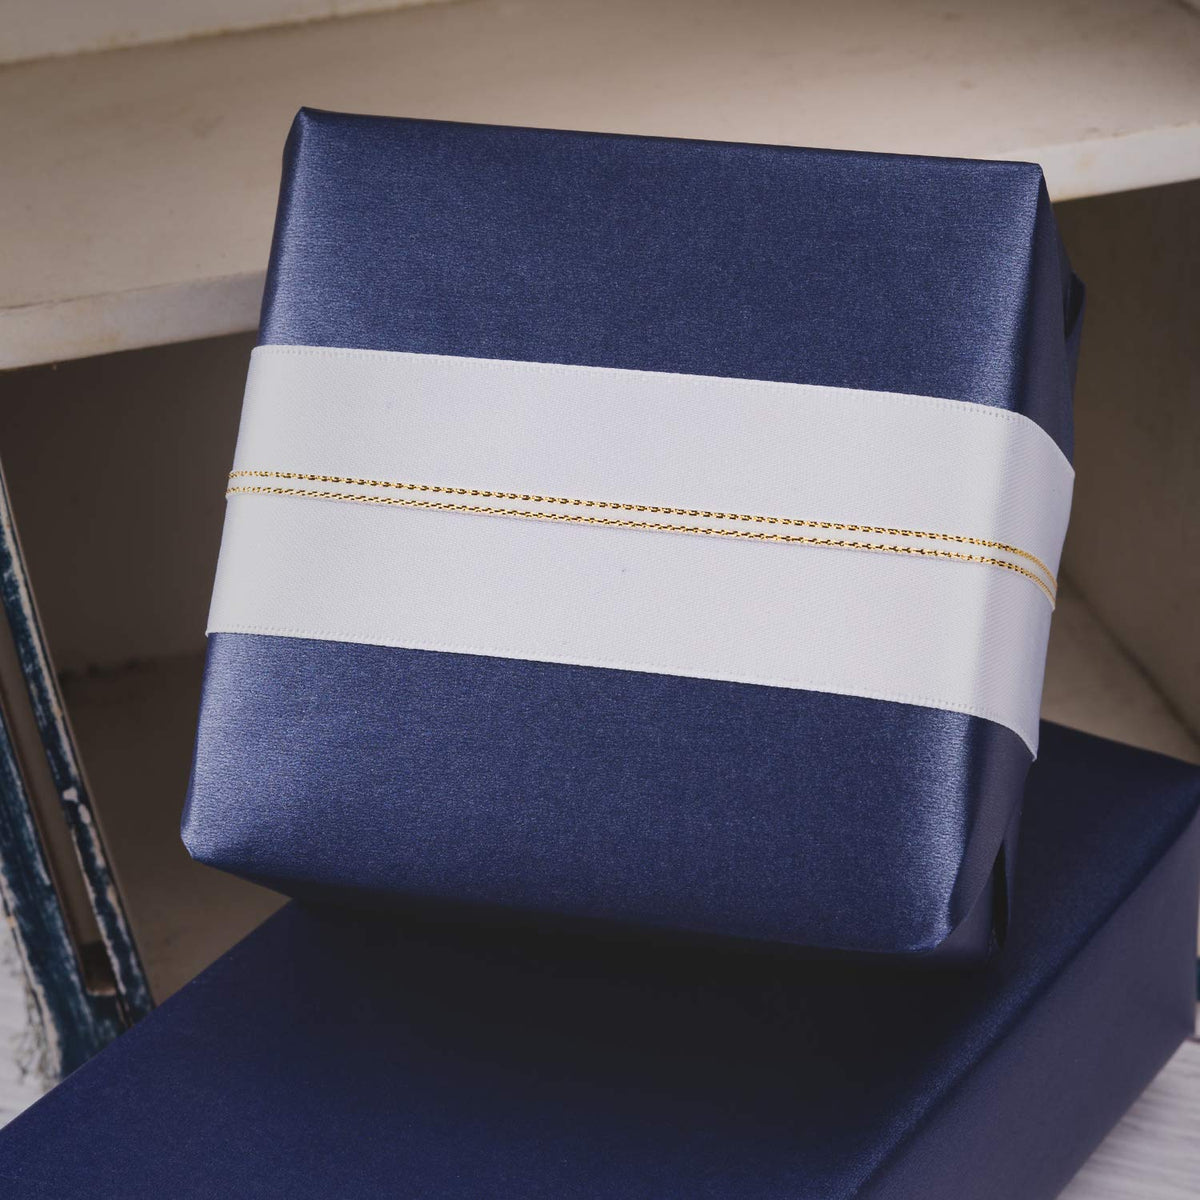 Wrapaholic-Jewelry-Wrapping-Paper-Roll-Navy-Blue-4